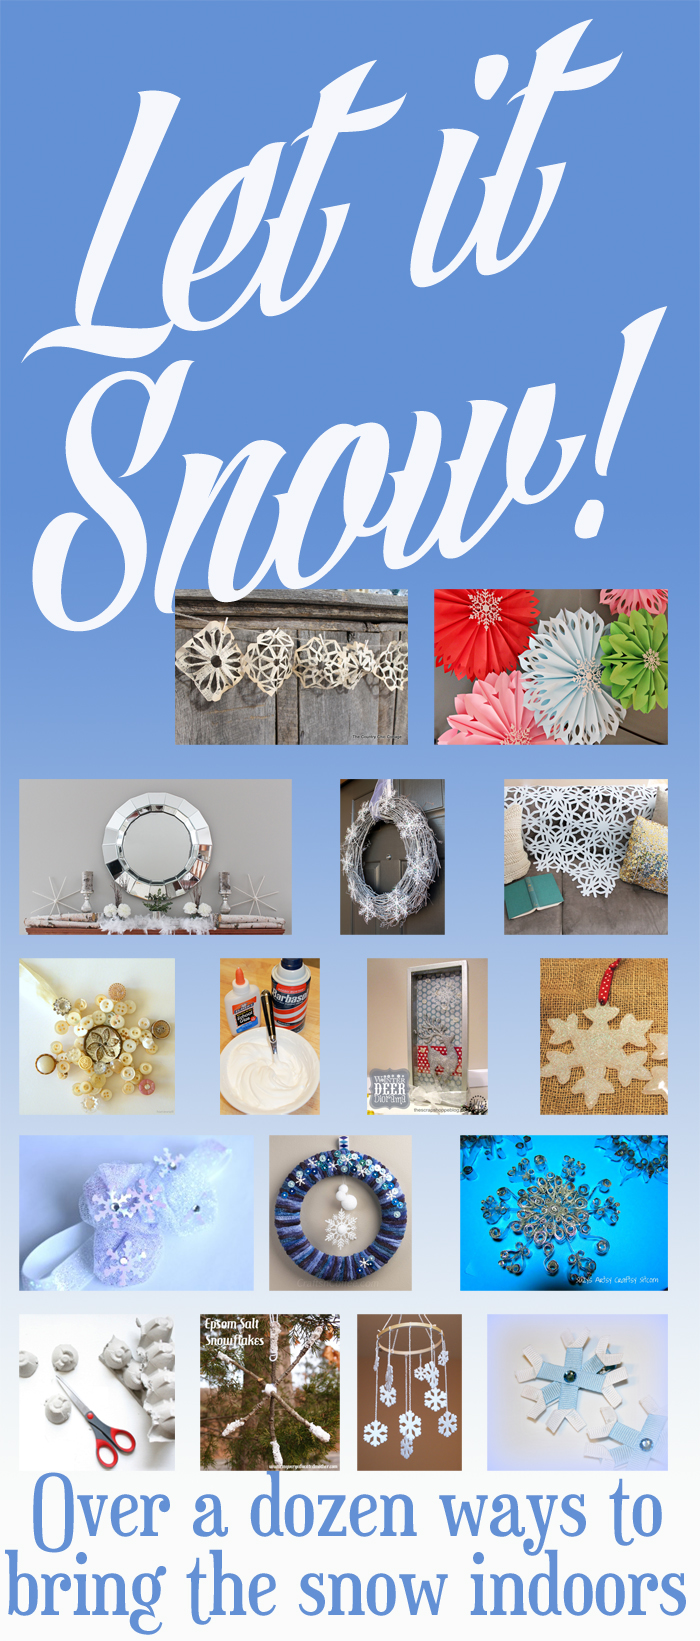 Let it Snow! Over a dozen ways to bring the snow inside!